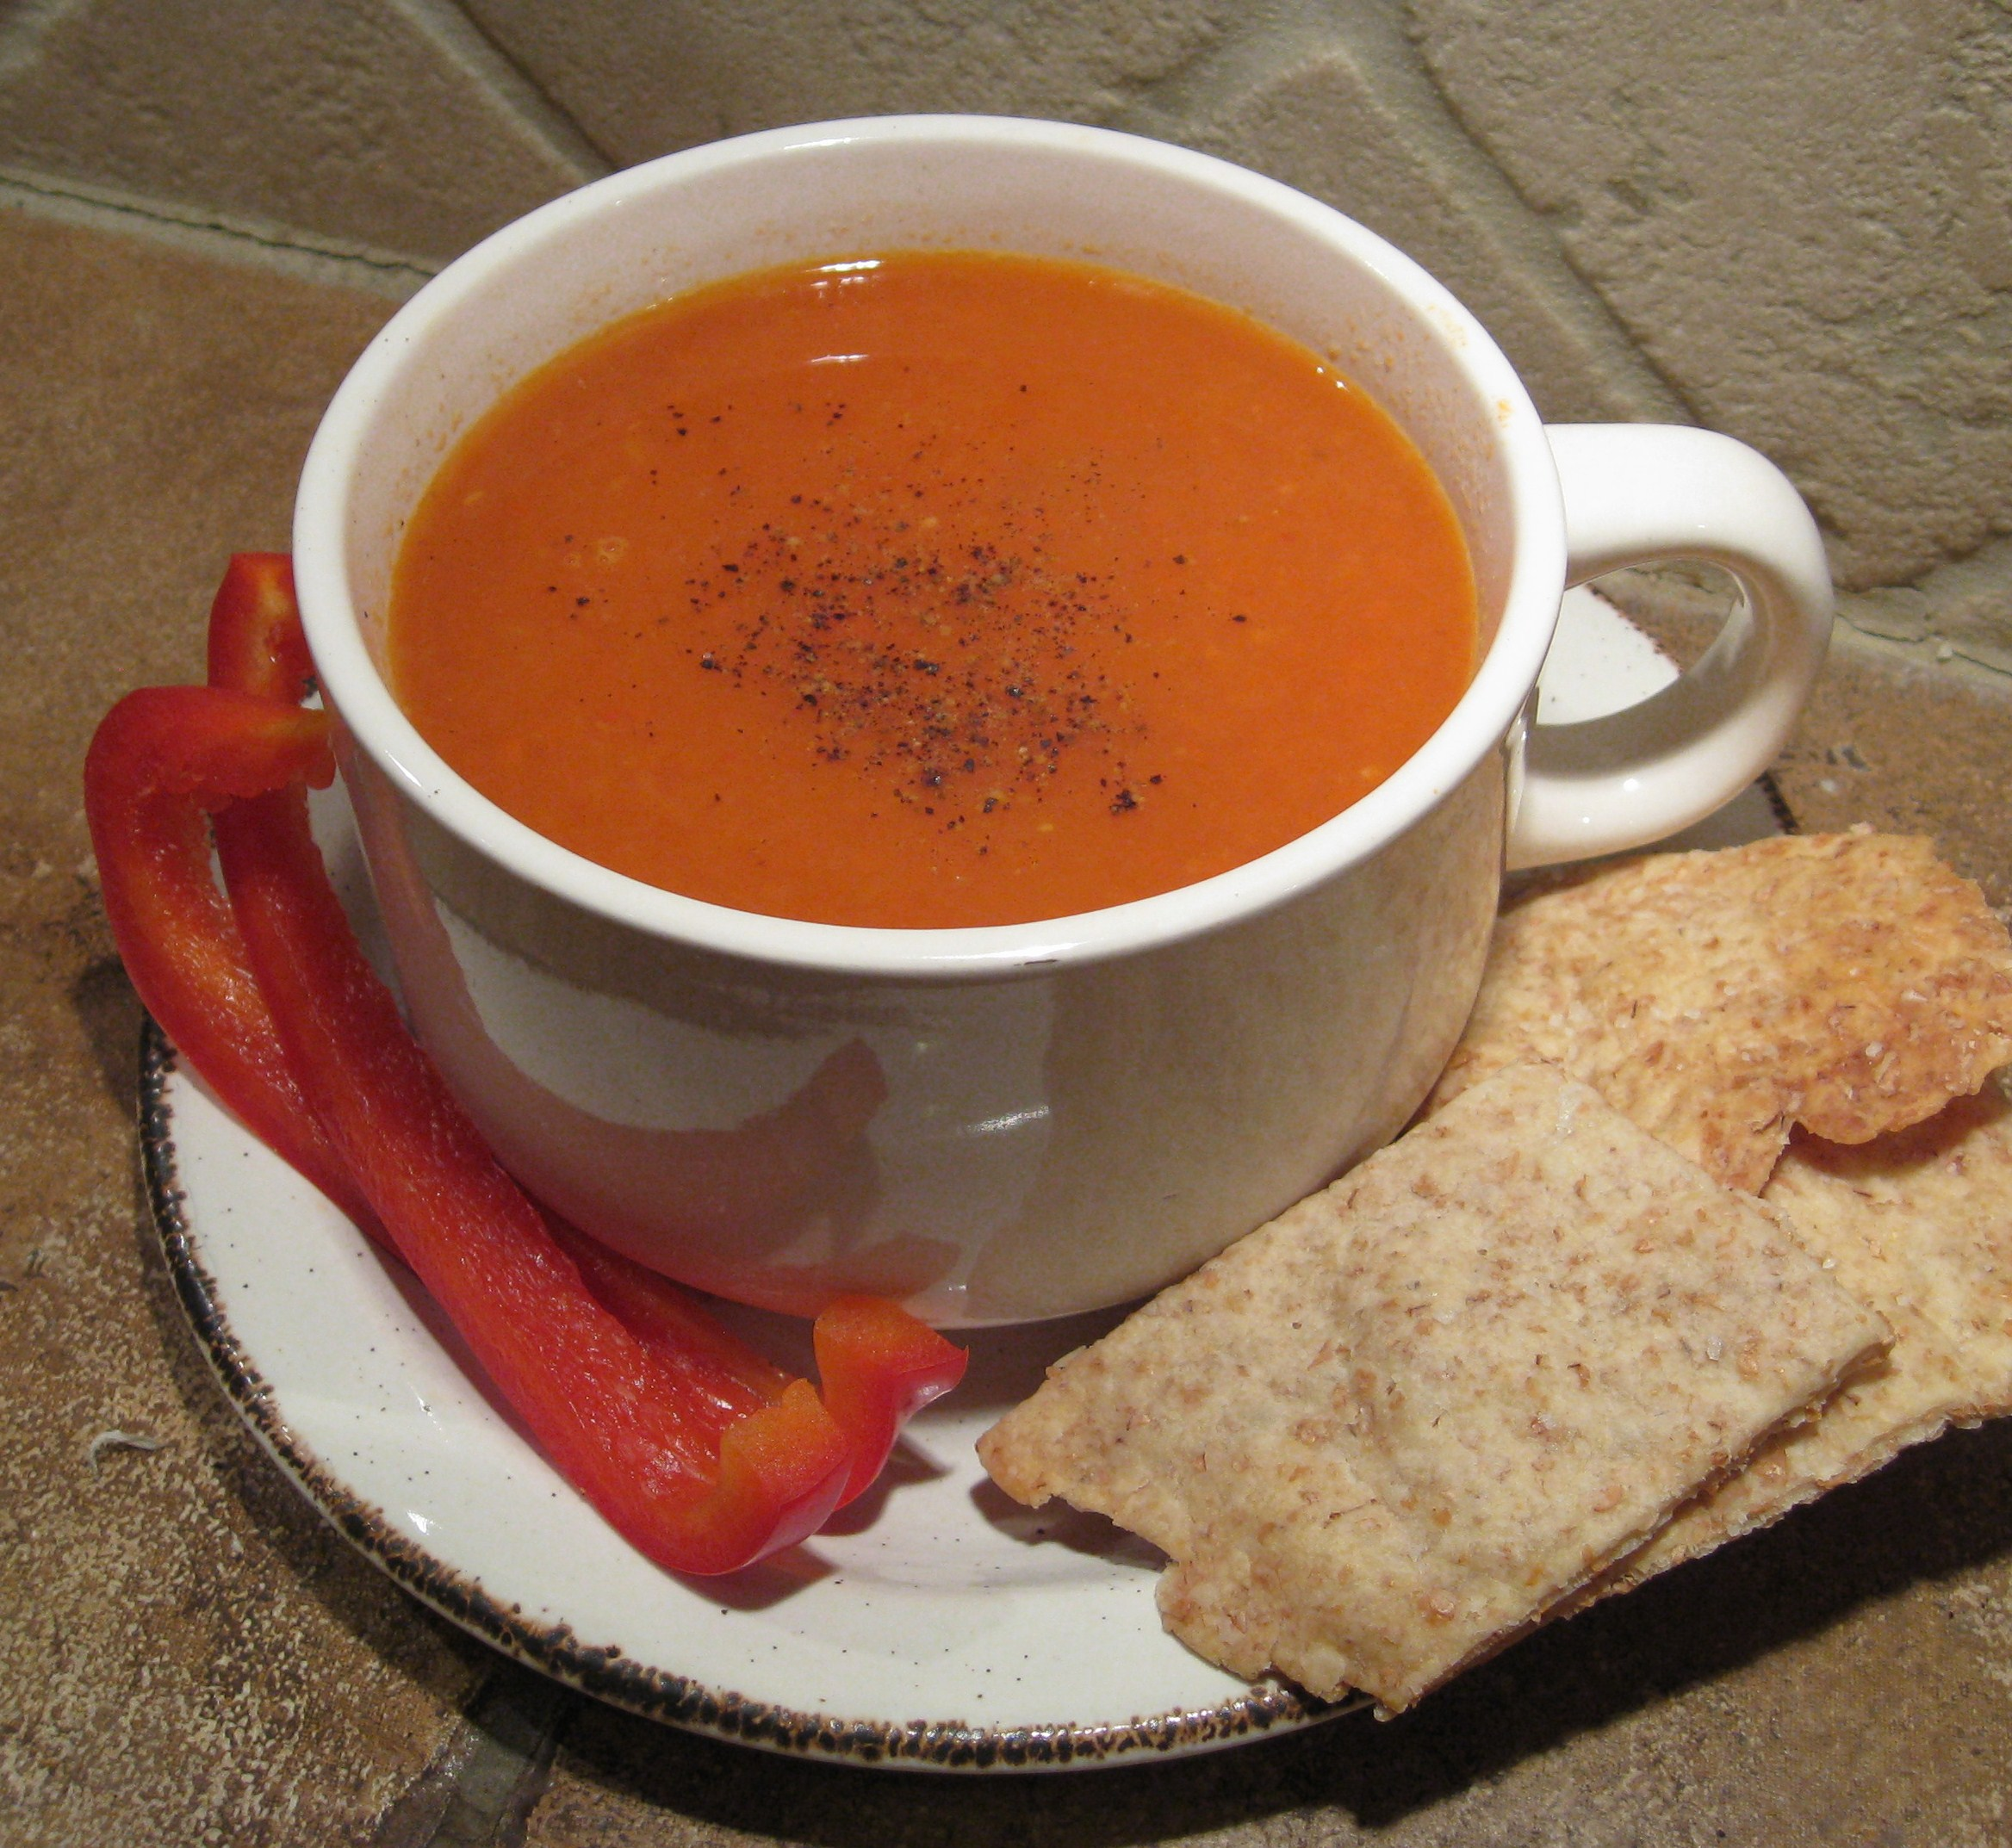 Roasted Red Pepper and Tomato Soup from Scratch